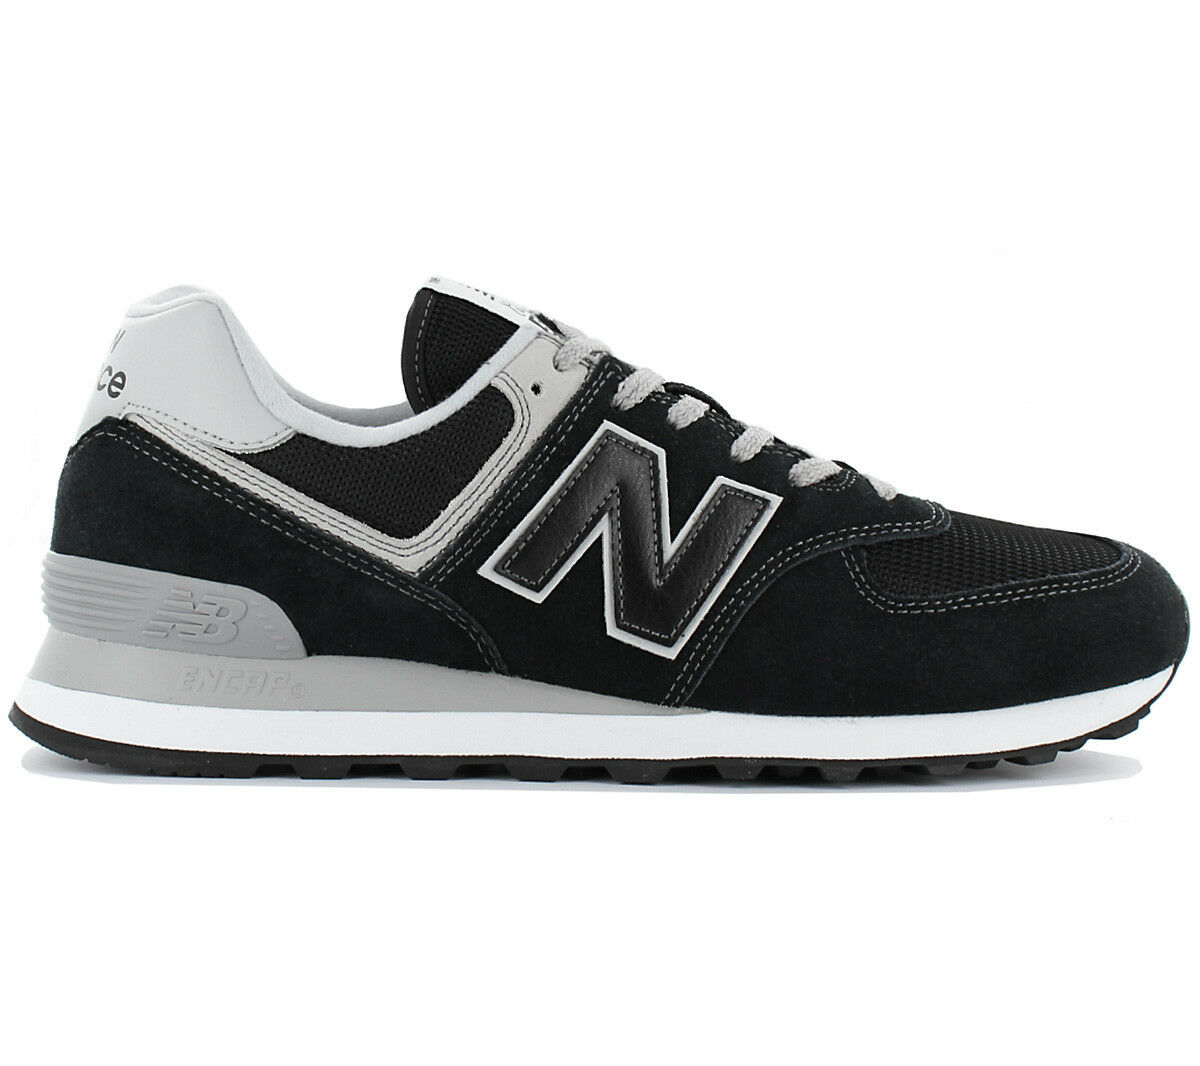 New Balance Classics Ml574 Men's Sneakers shoes Ml574egk 574 Gym shoes New